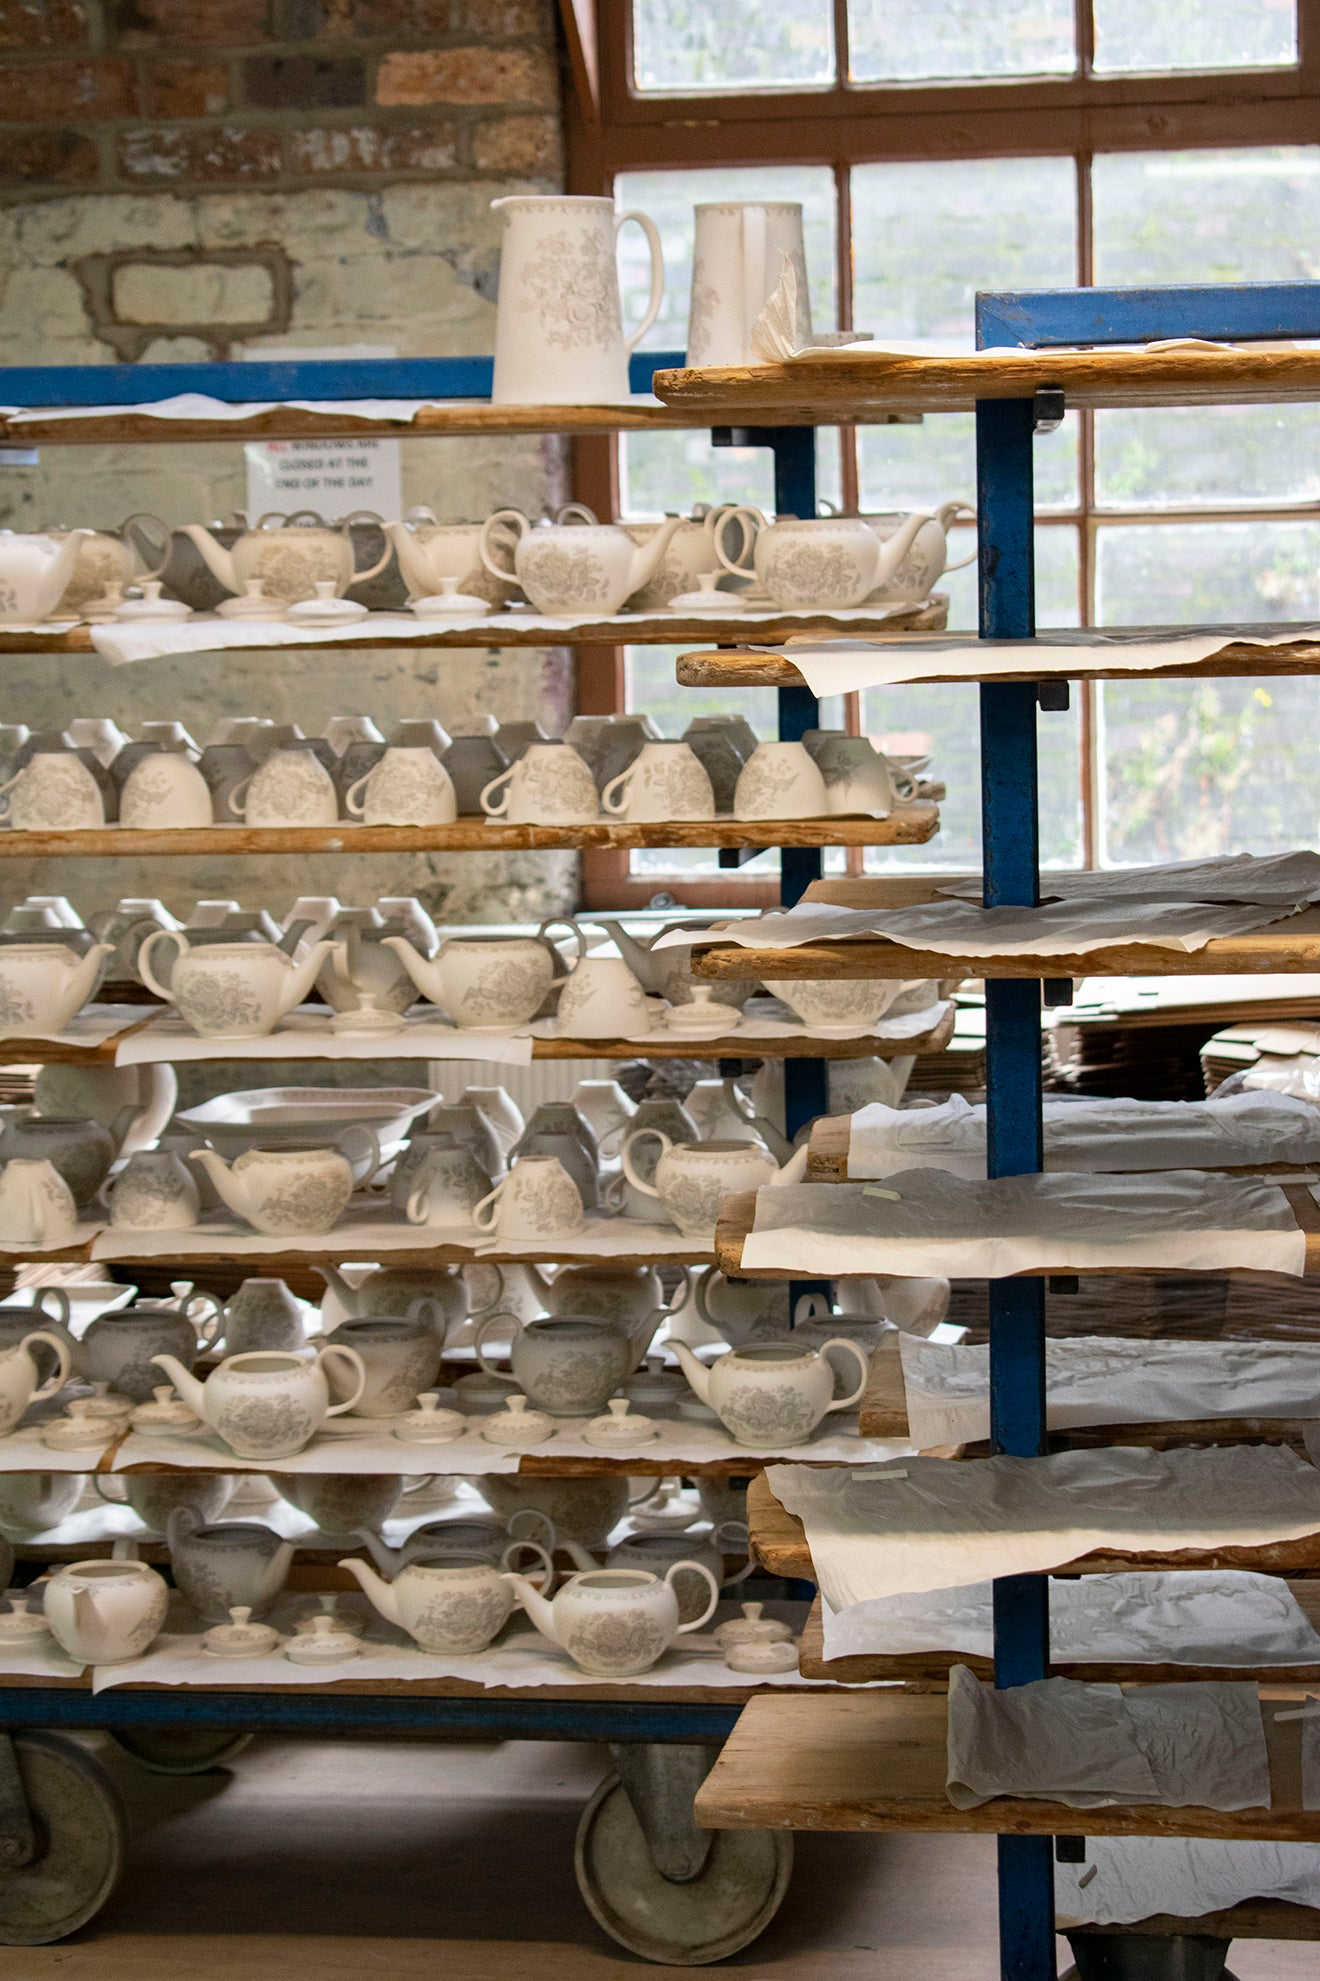 Burleigh Pottery Factory Visit and Tour Stoke-on-Trent